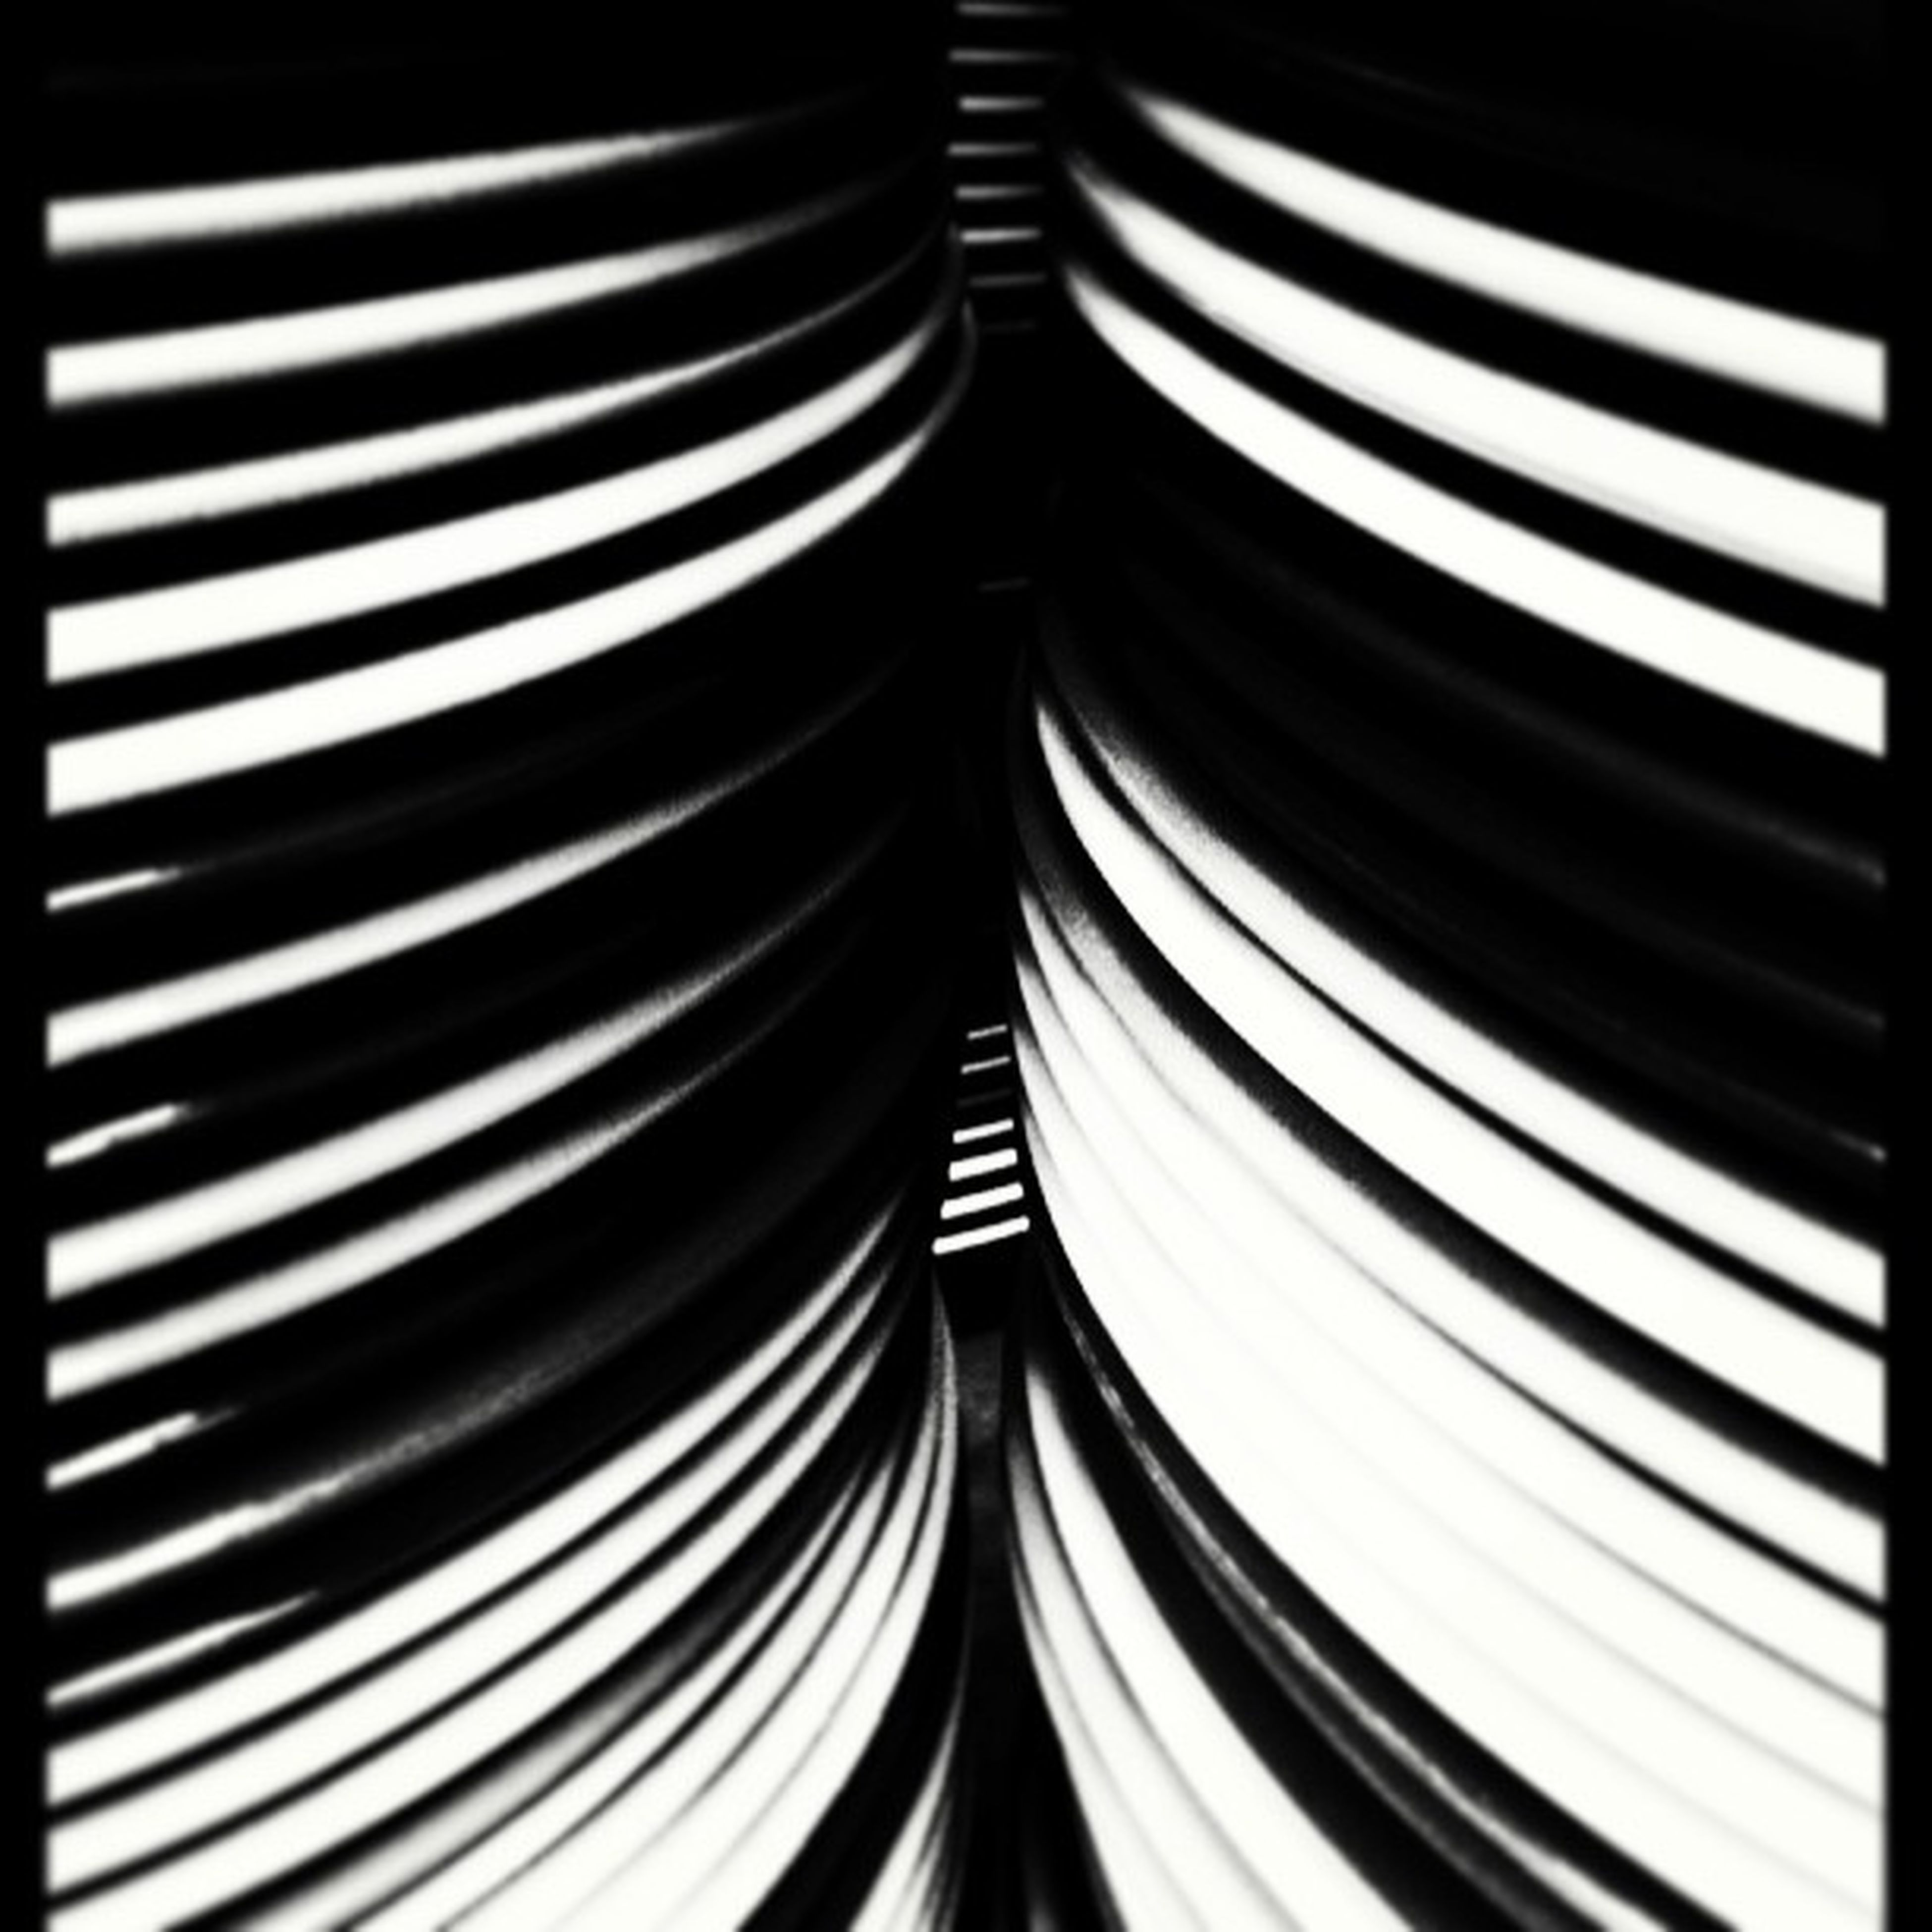 transfer print, auto post production filter, indoors, pattern, repetition, backgrounds, full frame, close-up, in a row, design, no people, diminishing perspective, studio shot, striped, abstract, detail, textured, white color, black background, blinds